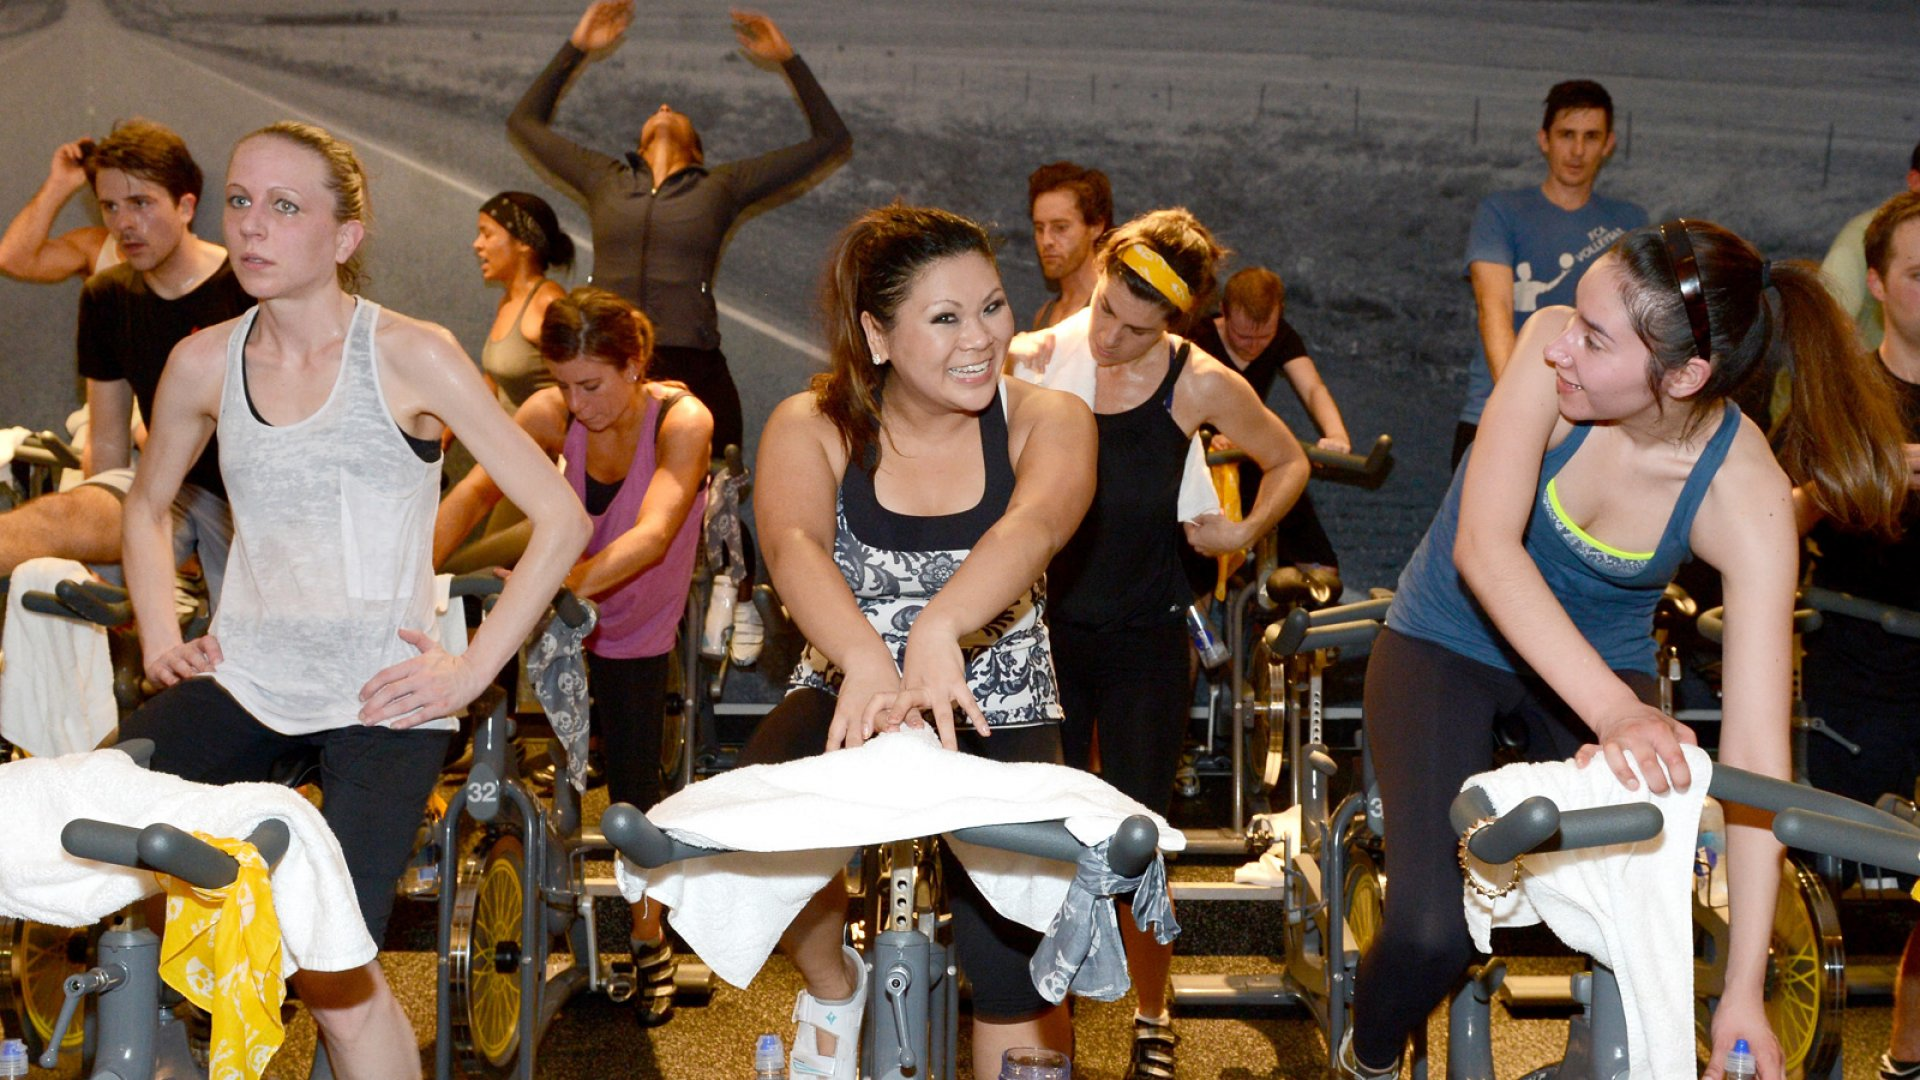 How SoulCycle Manages to Keep Customers Paying $34 for Spinning Classes